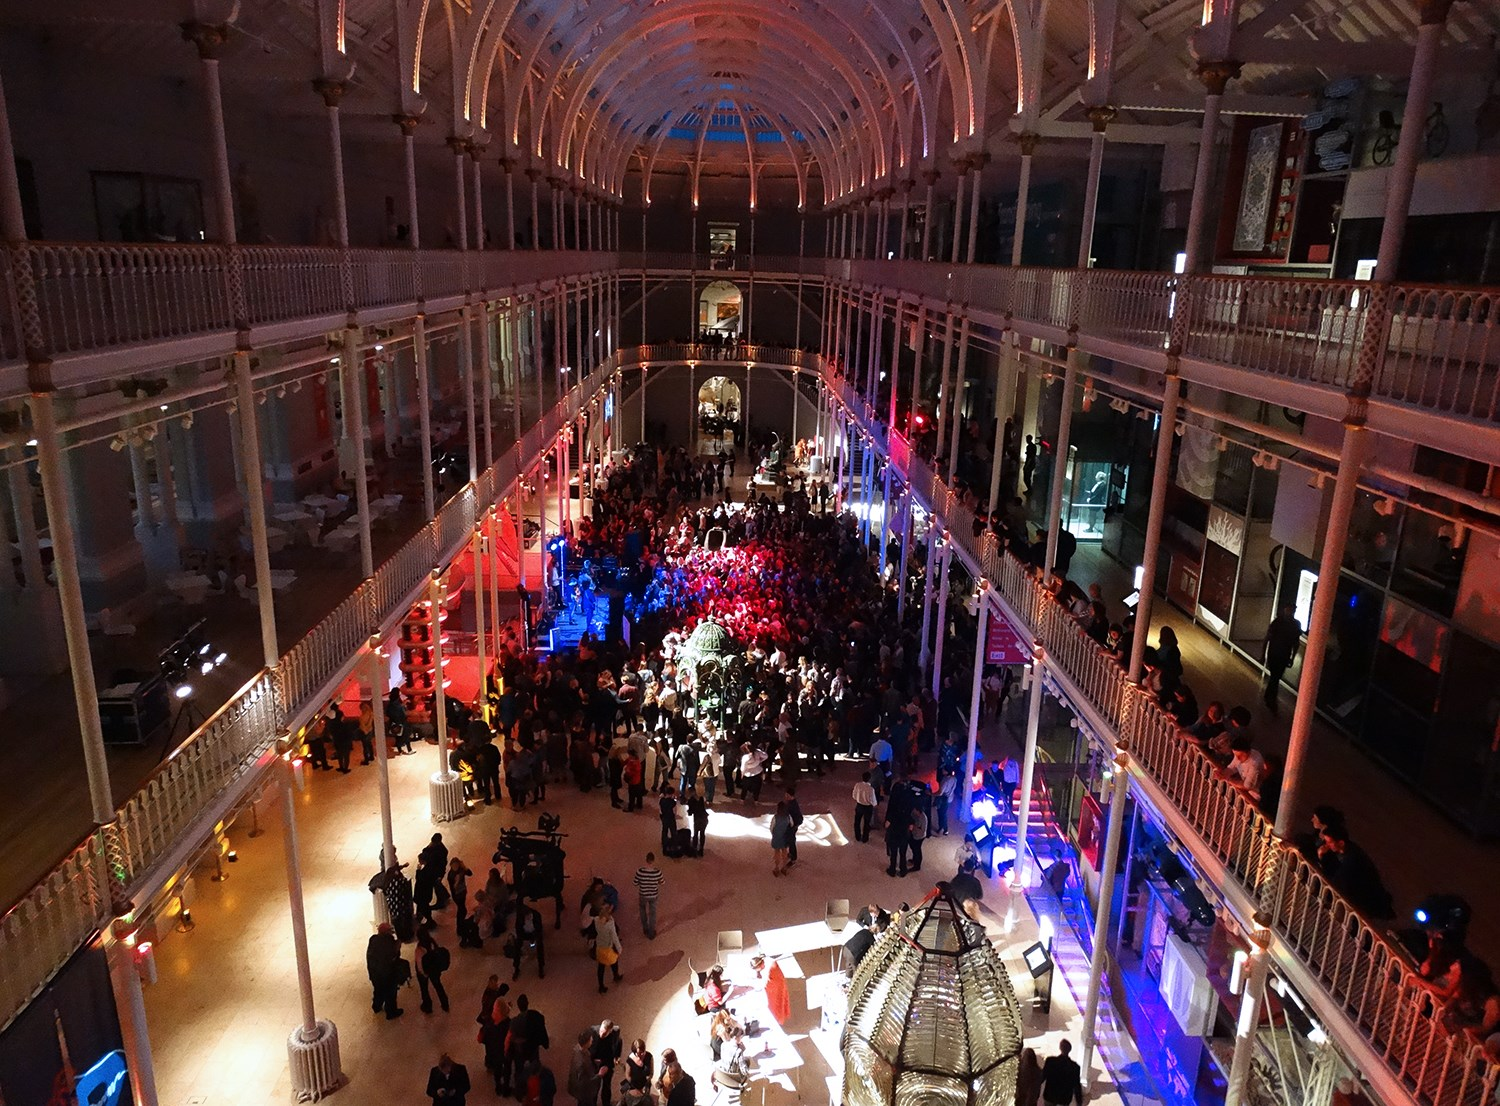 See the Grand Gallery at the museum transformed by music and dance